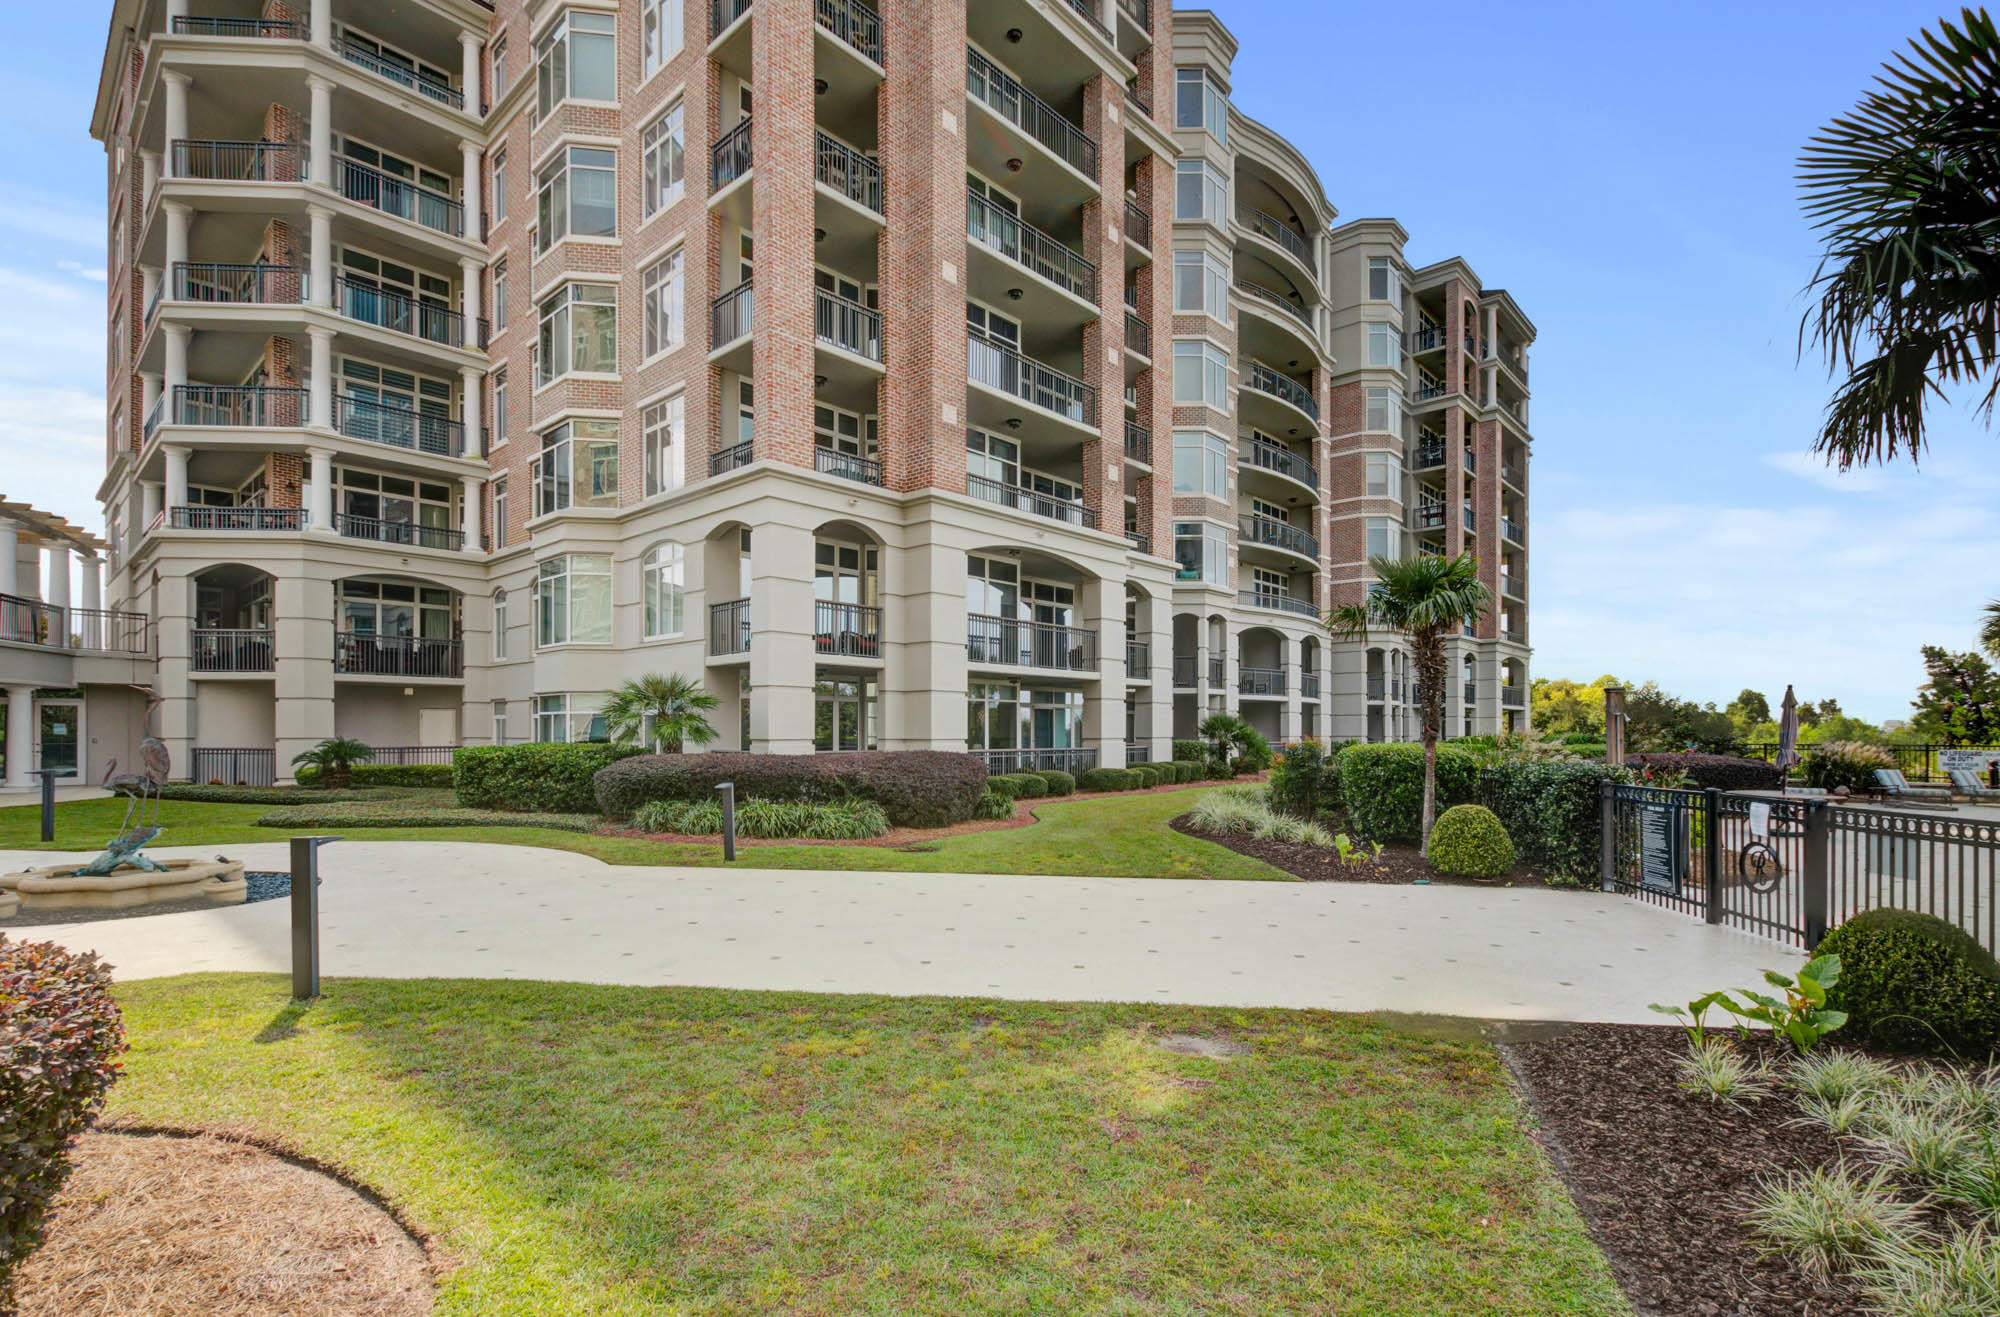 Renaissance On Chas Harbor Homes For Sale - 231 South Plaza, Mount Pleasant, SC - 4